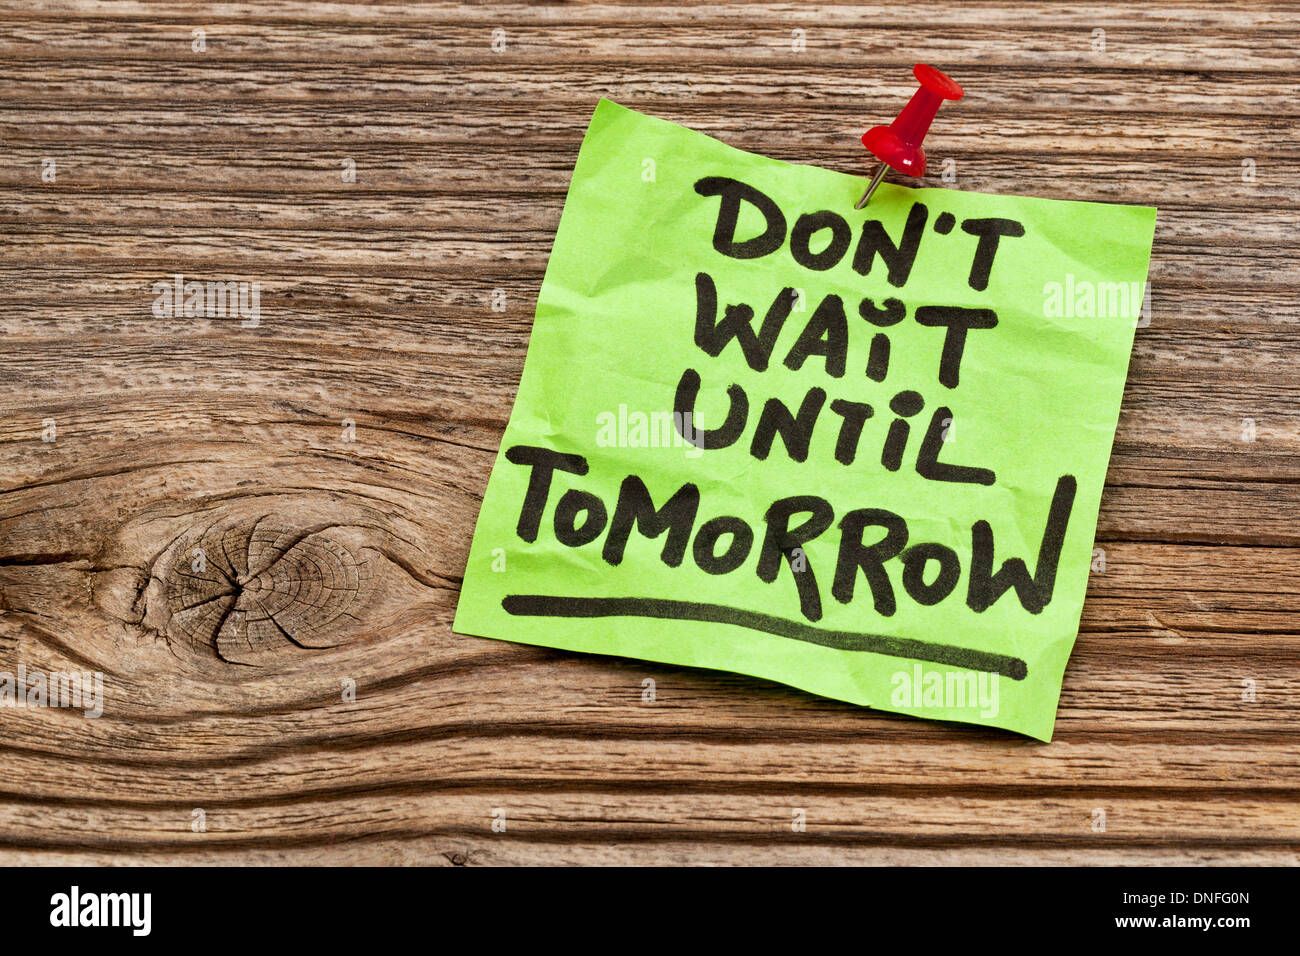 do not wait until tomorrow - motivational reminder - handwriting on sticky note against grained wood - Stock Image